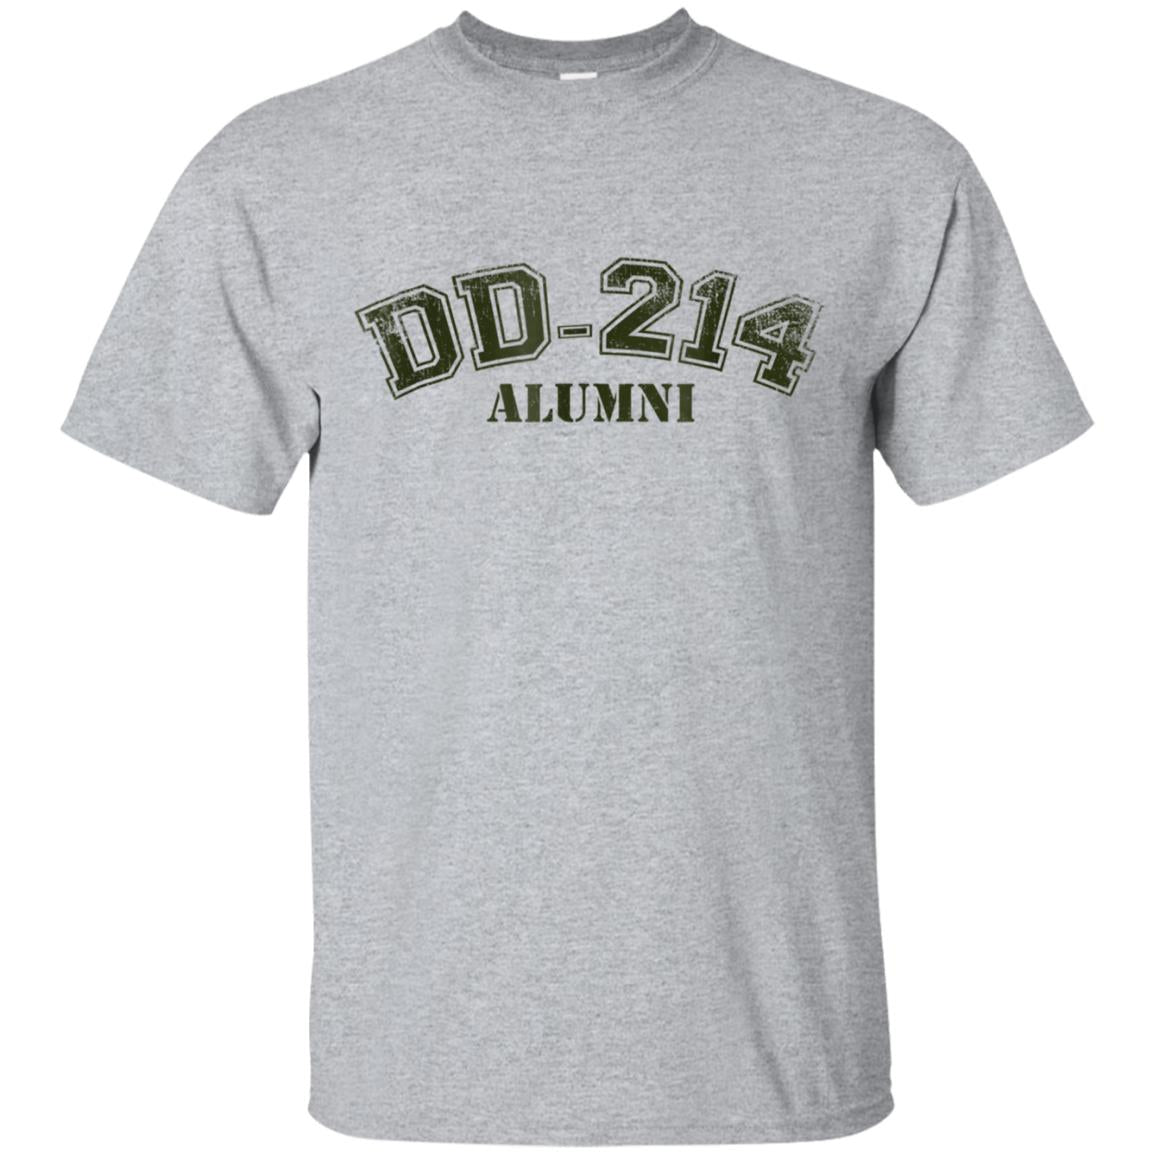 DD-214 Alumni T-Shirt for US Navy, Air Force, Army Veterans 99promocode